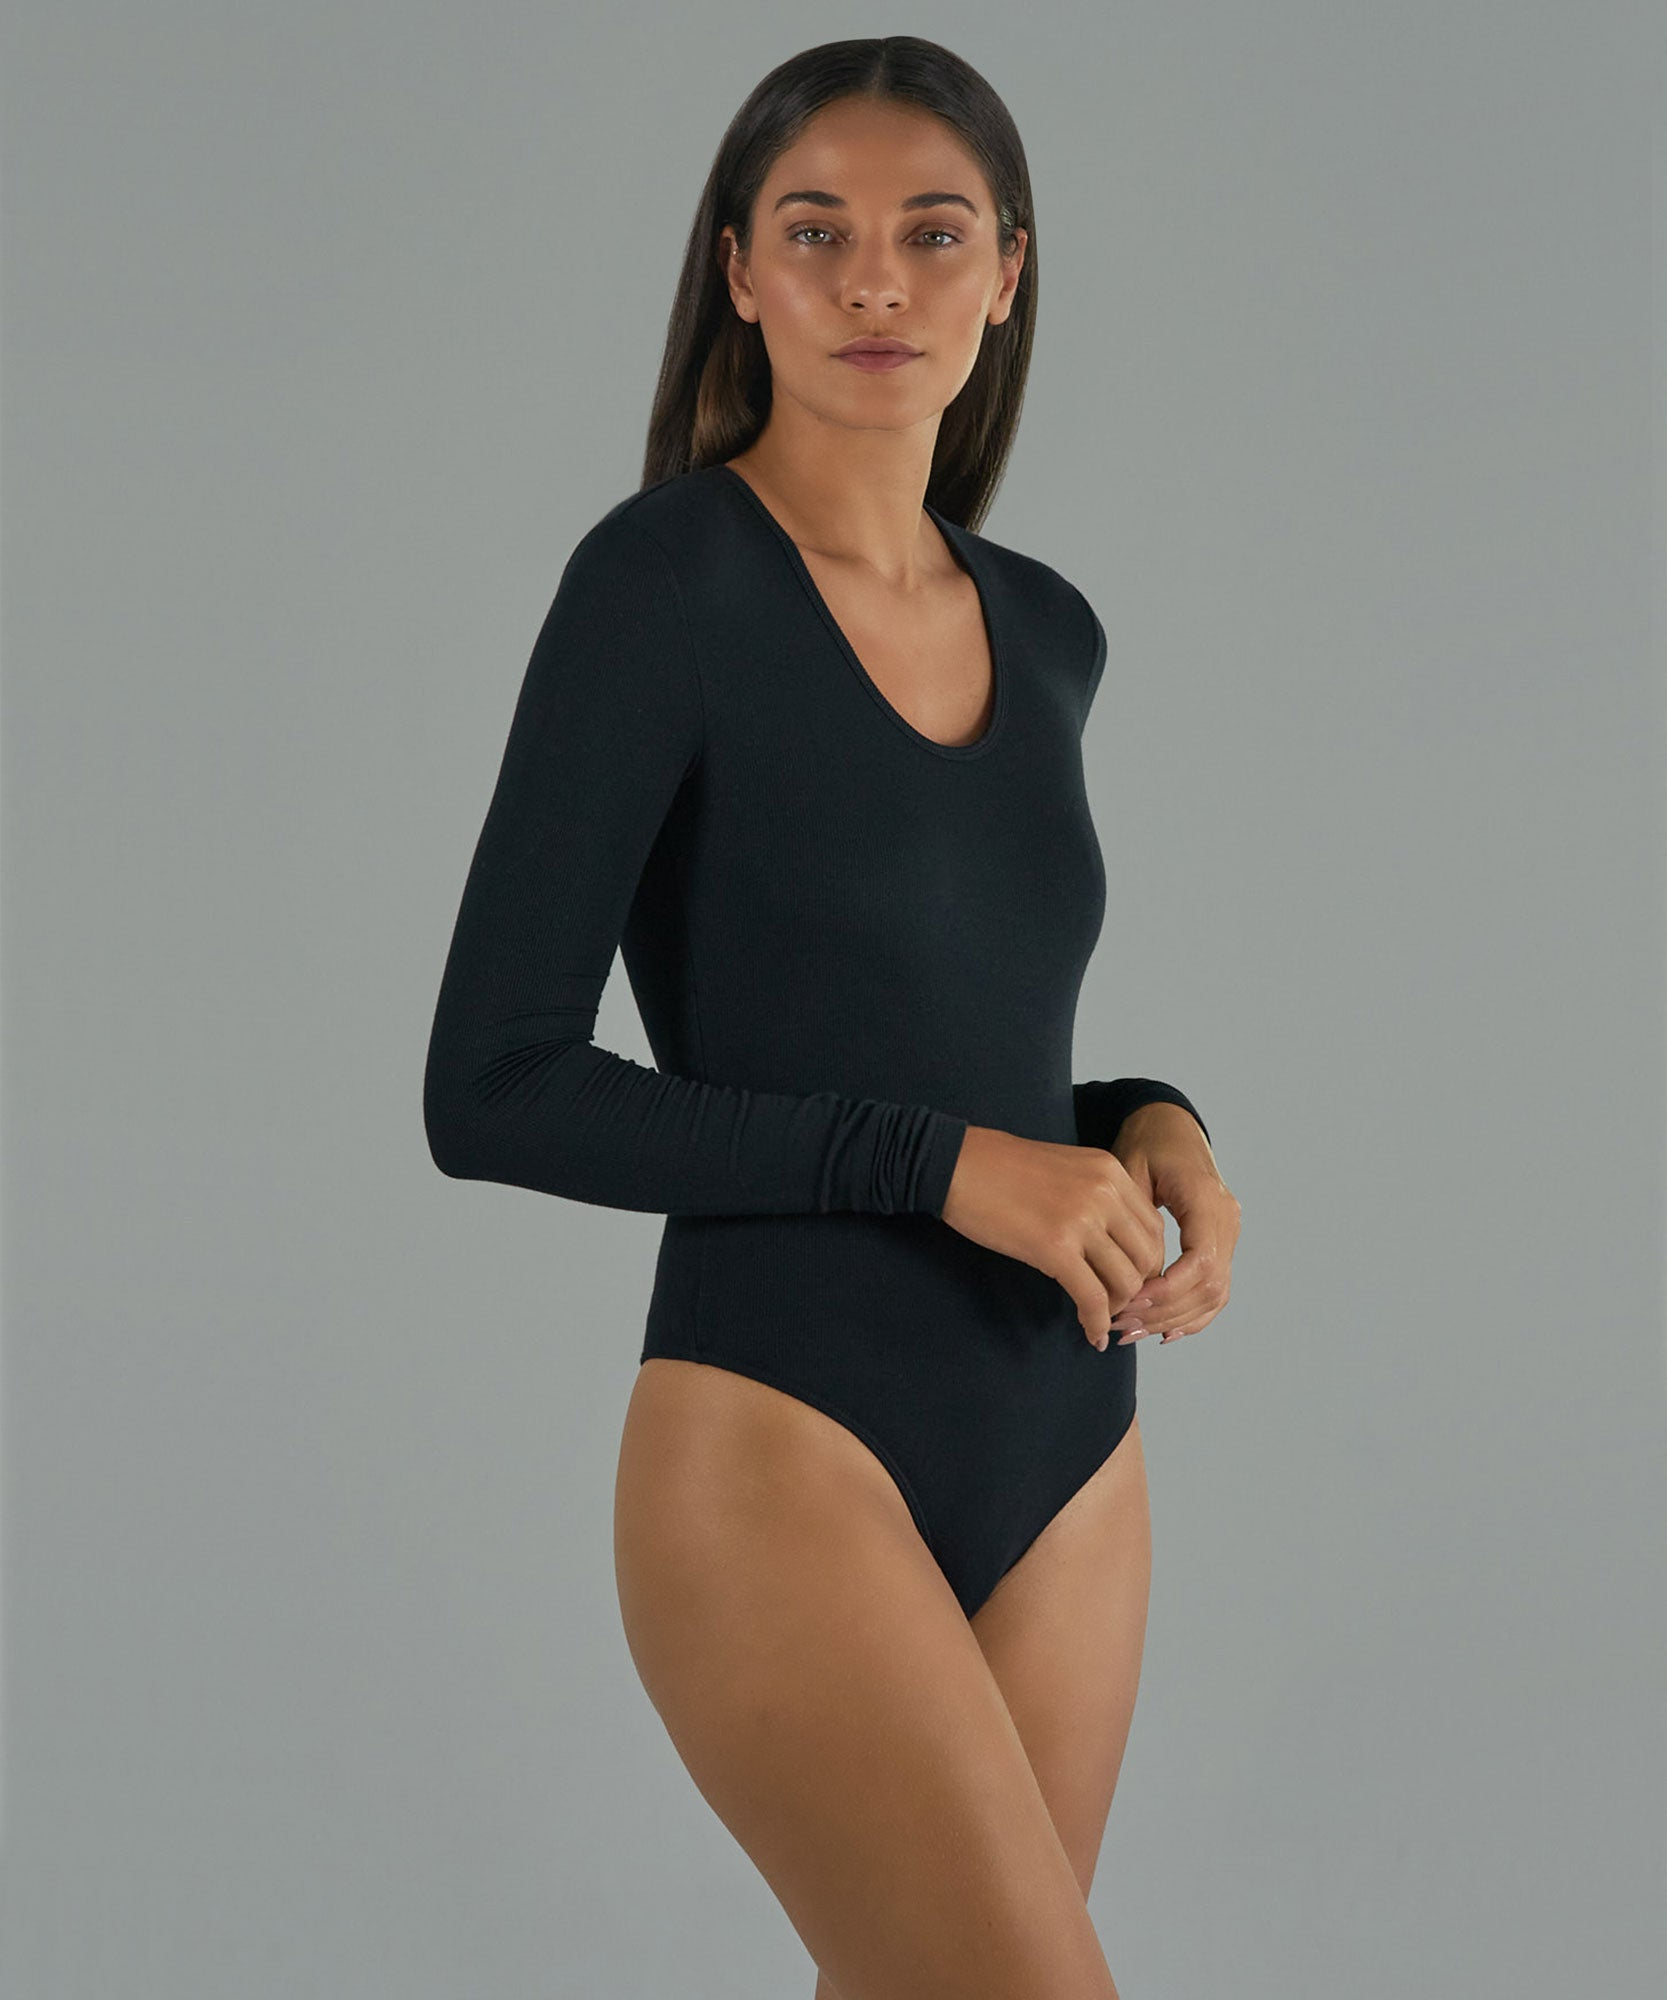 Black Modal Rib Scoop Neck Bodysuit - Women's Ribbed Bodysuit by ATM Anthony Thomas Melillo